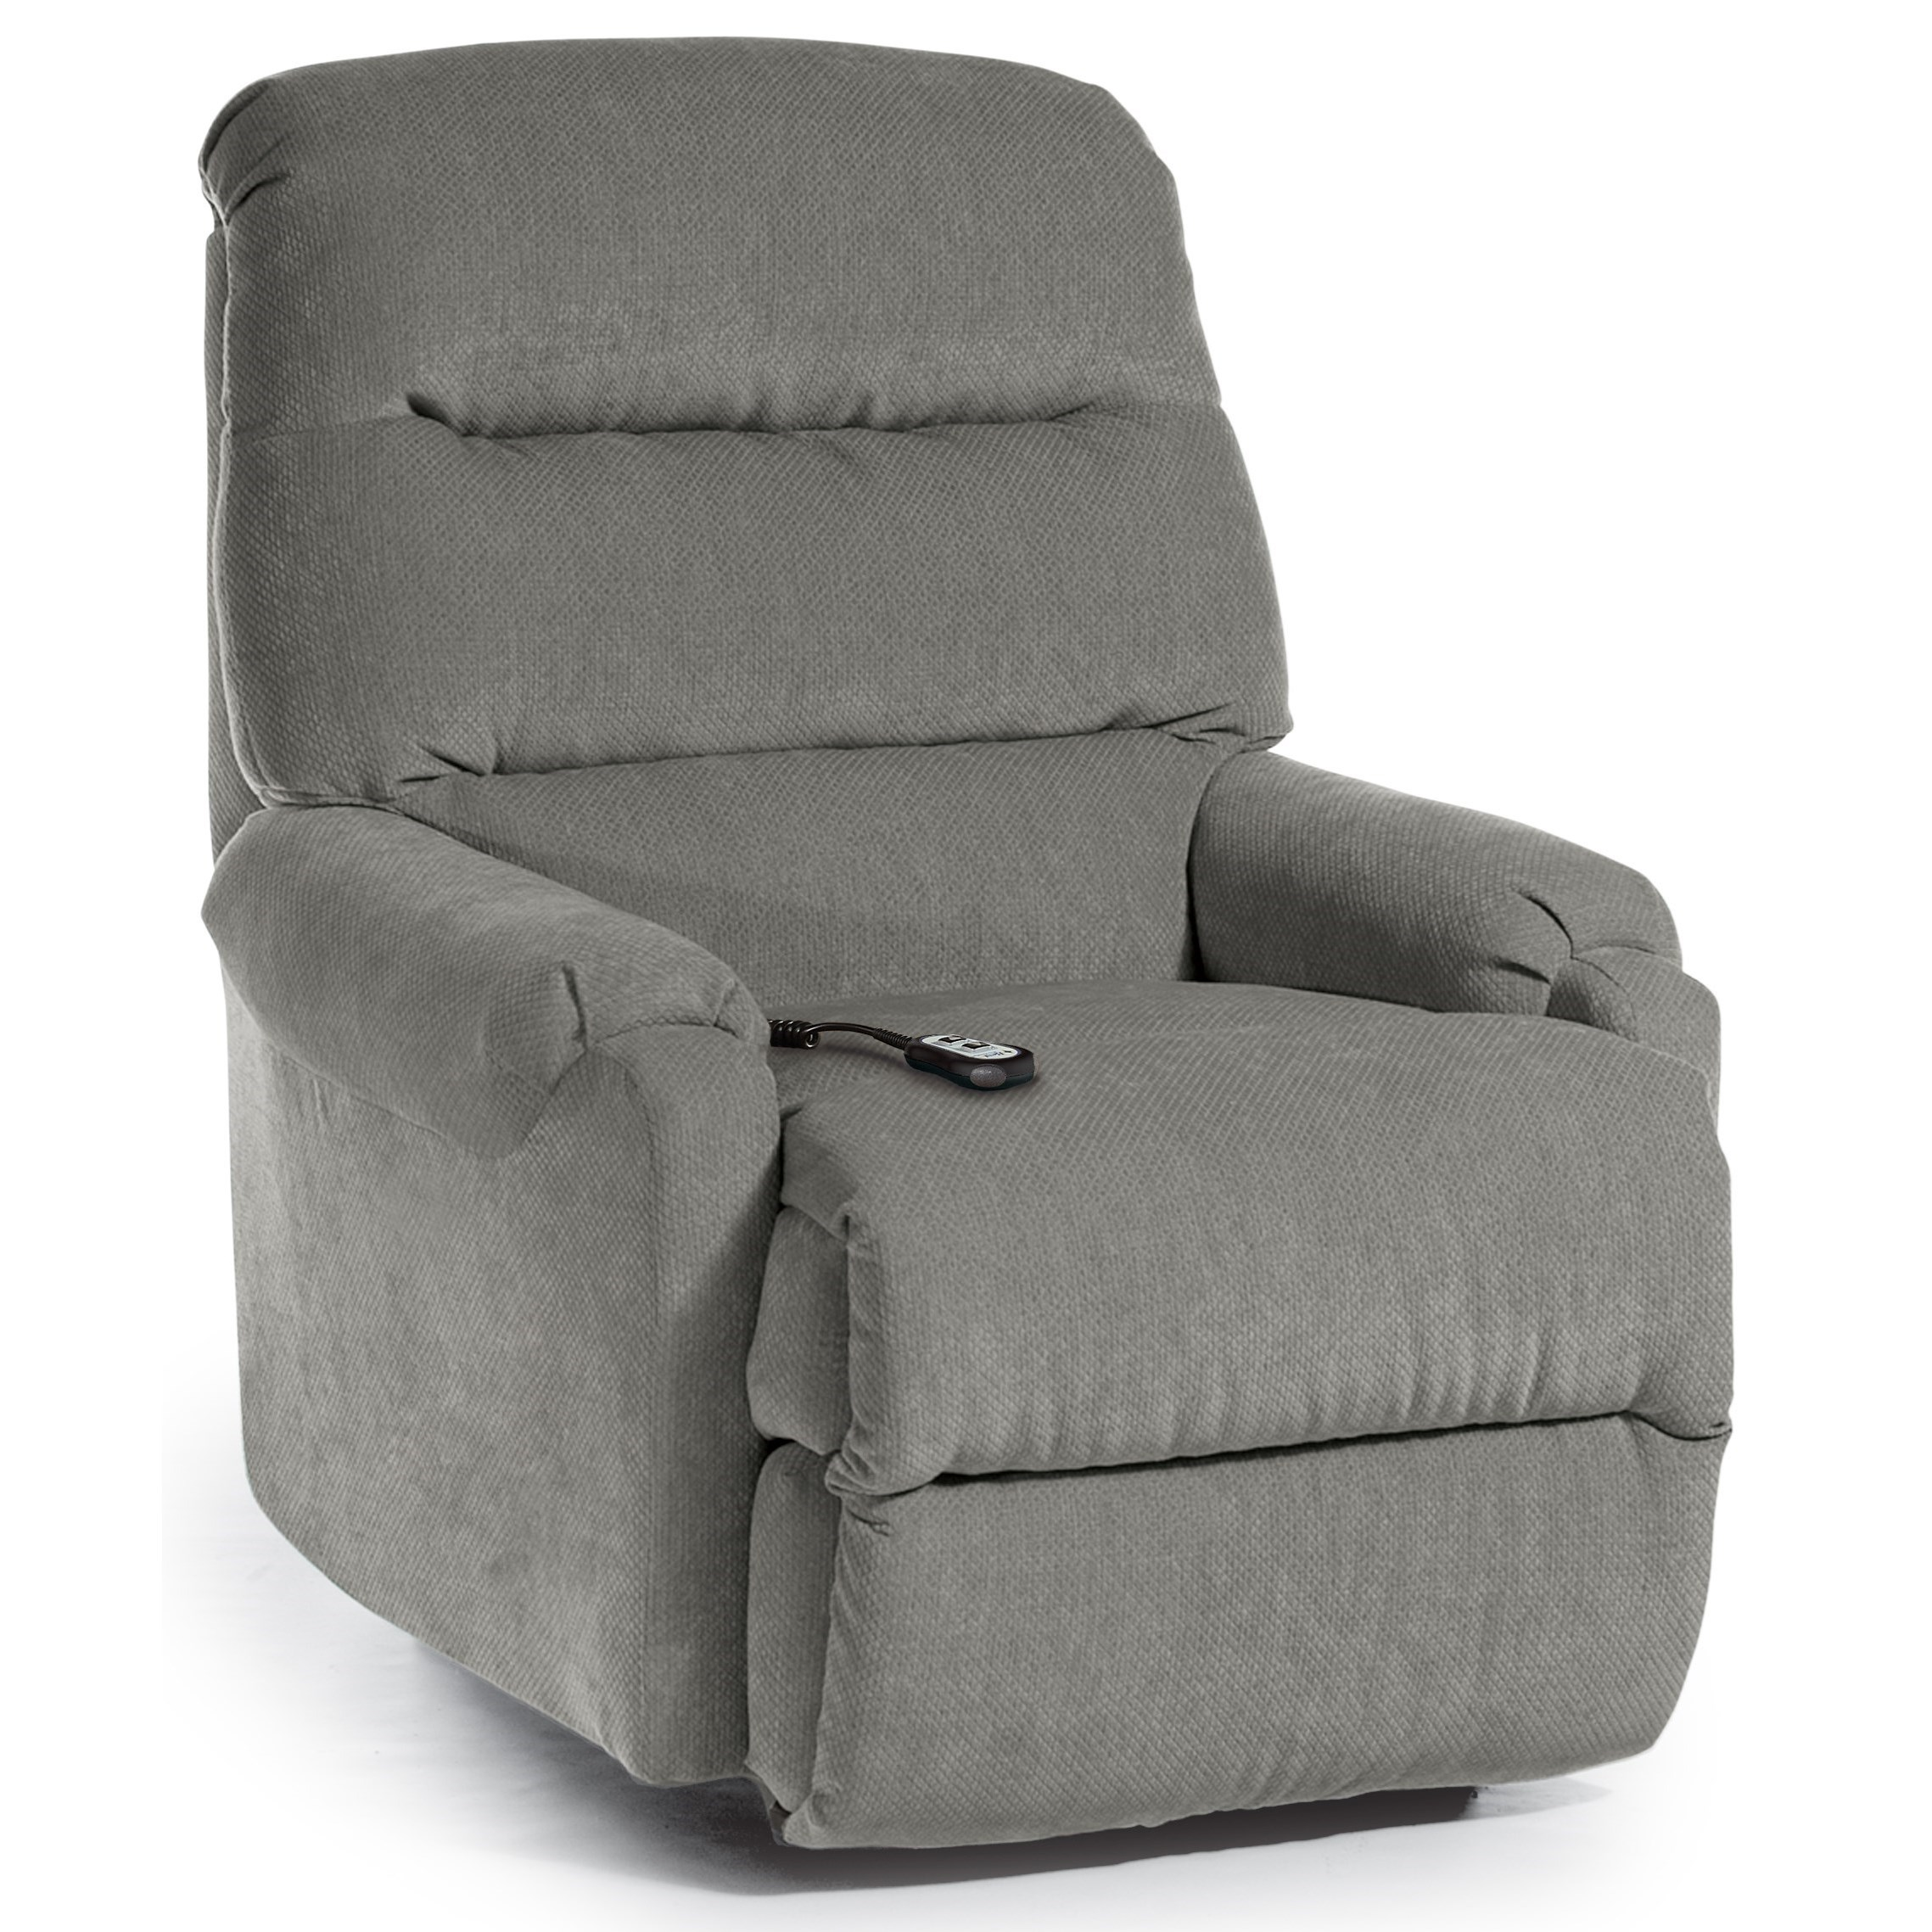 power lift chair lounge cushions best home furnishings recliners petite sedgefield